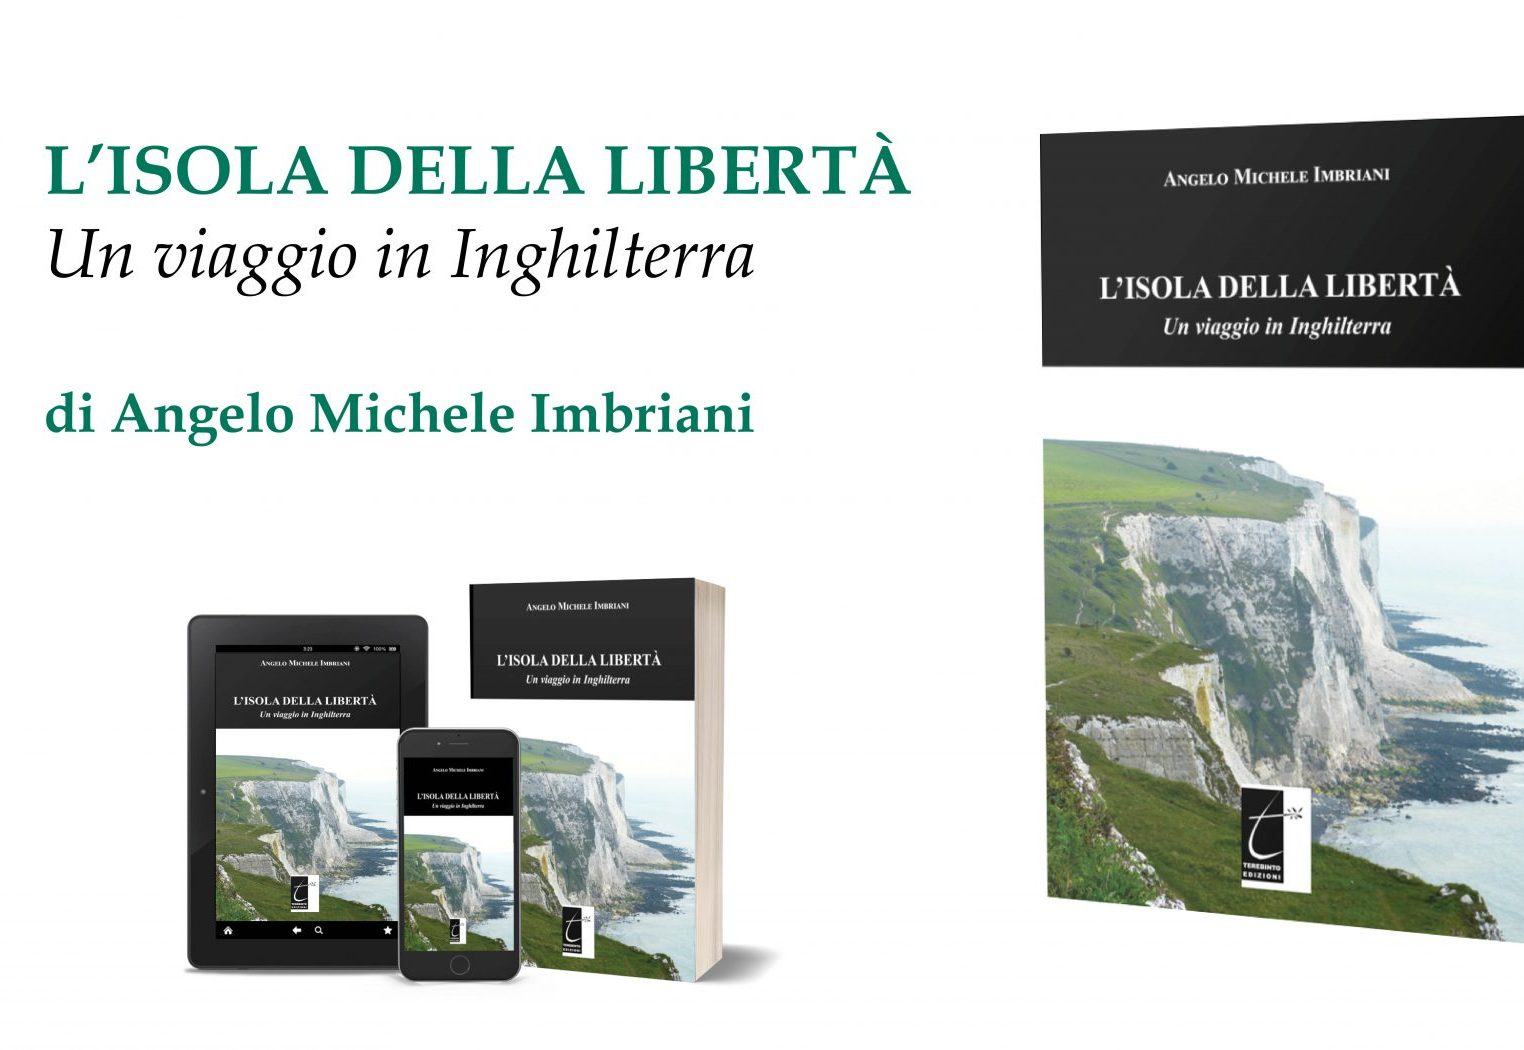 IL BLOG DI ANGELO MICHELE IMBRIANI